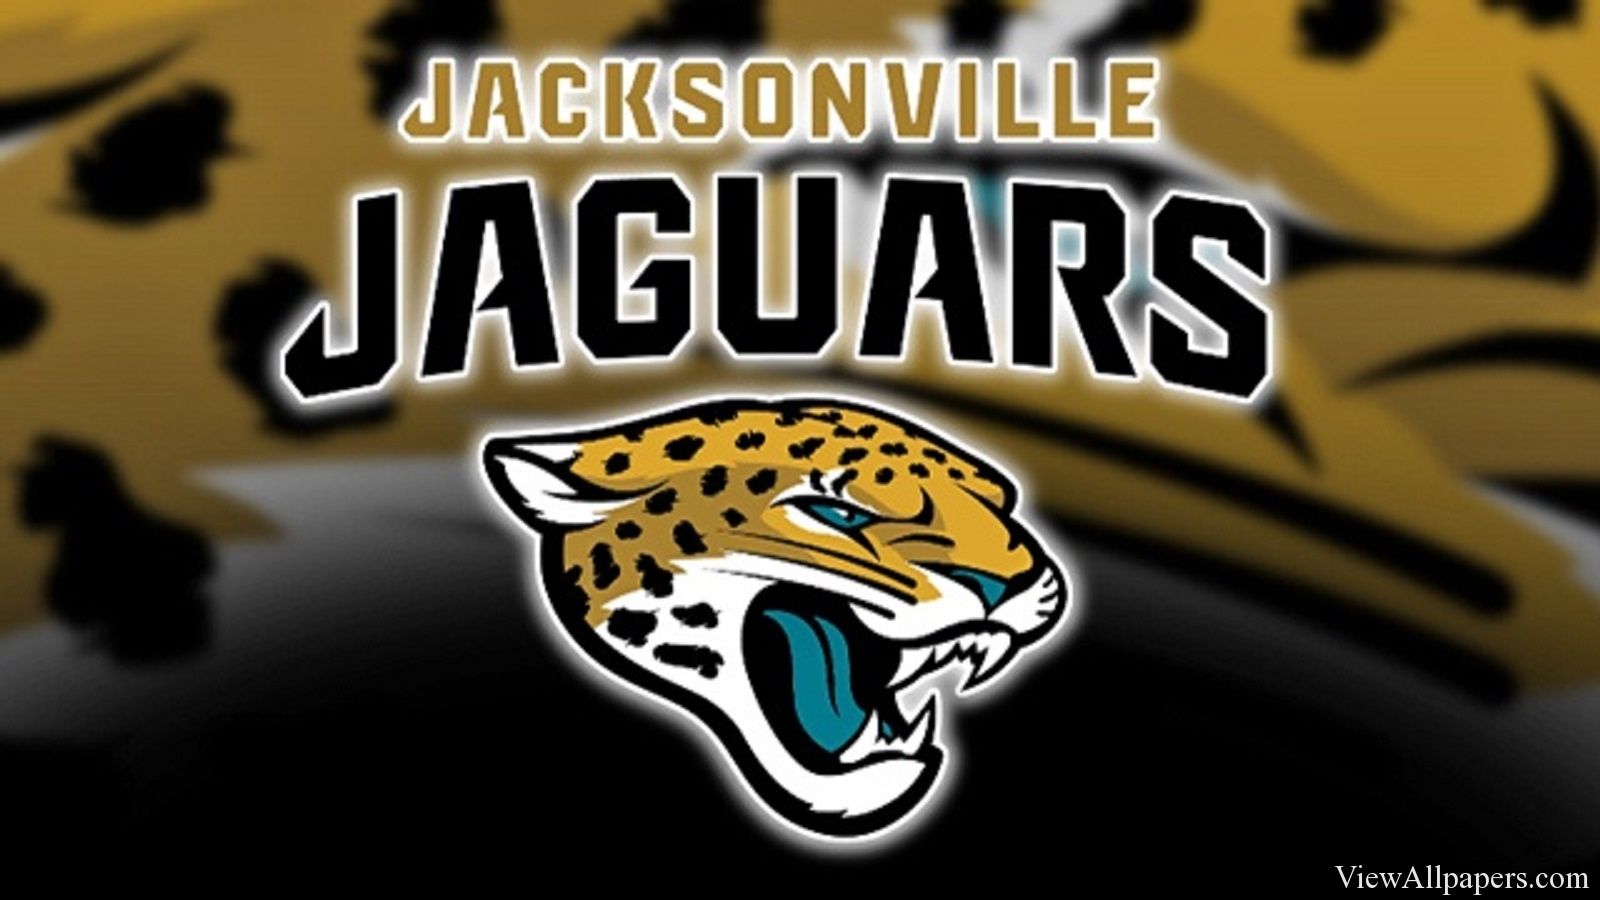 free download wallpapers jaguar jacksonville jaguars logo nfl pdfcast 1600x900